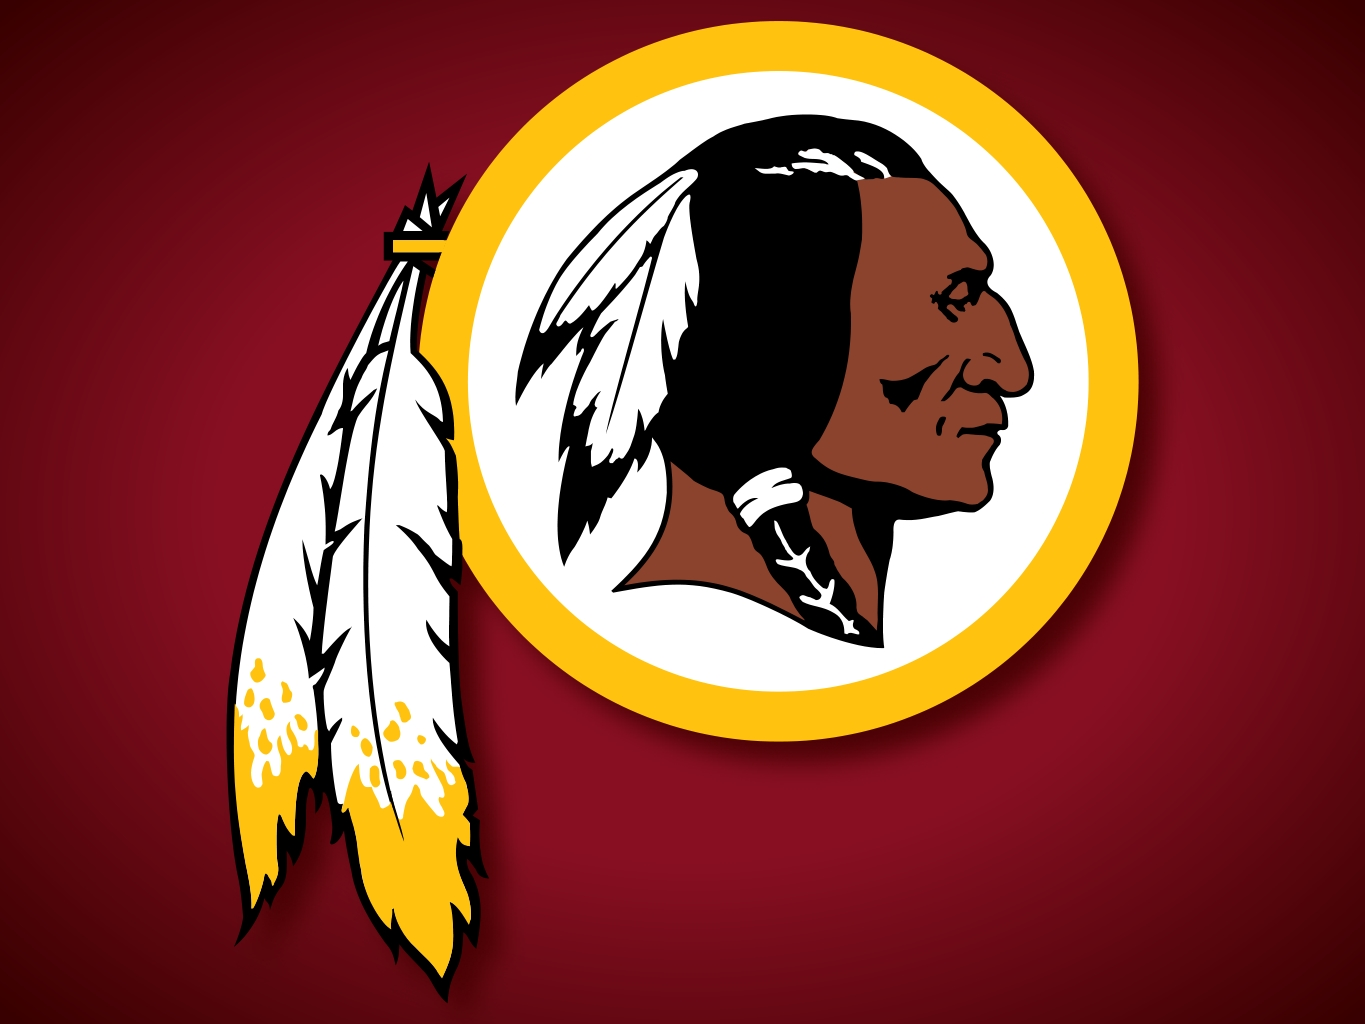 nfl washington redskins 09 06 2011 nfl washington redskins wallpaper 1365x1024